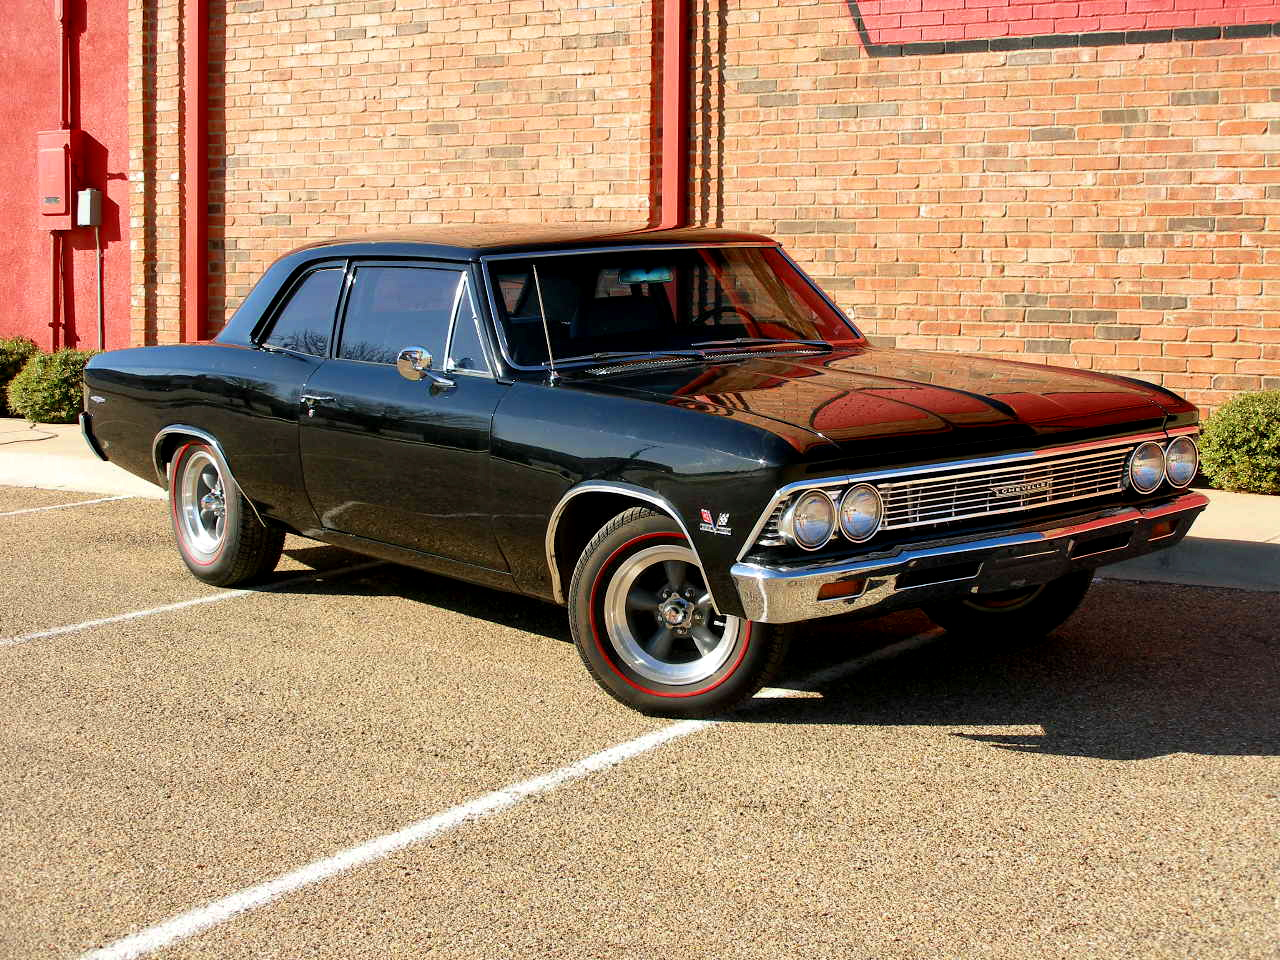 The chevrolet chevelle debuted for the 1964 model year as a mid size automobile from chevrolet it was basically a smaller version of the impala